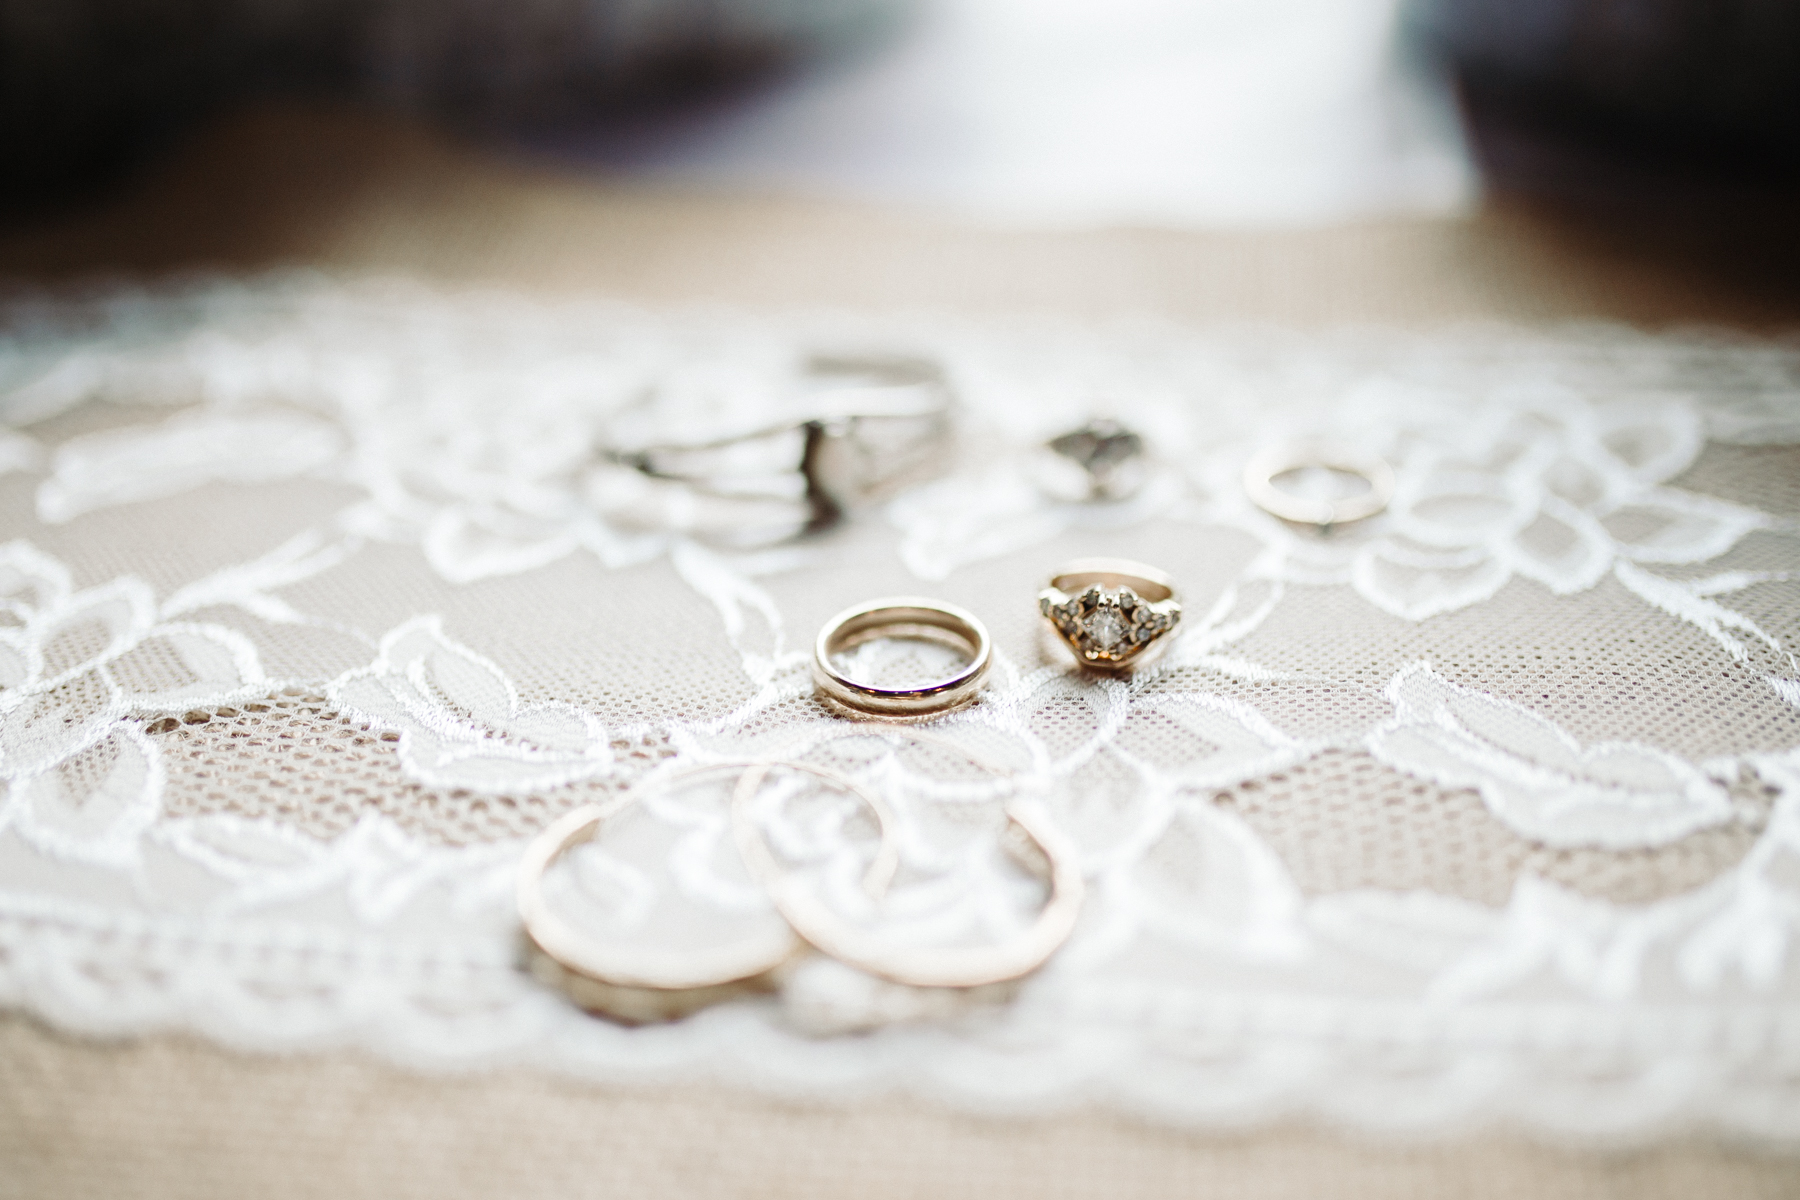 Bride's rings and jewelry details at a Sunny summer wedding at Dara's Garden in Knoxville, Tennessee